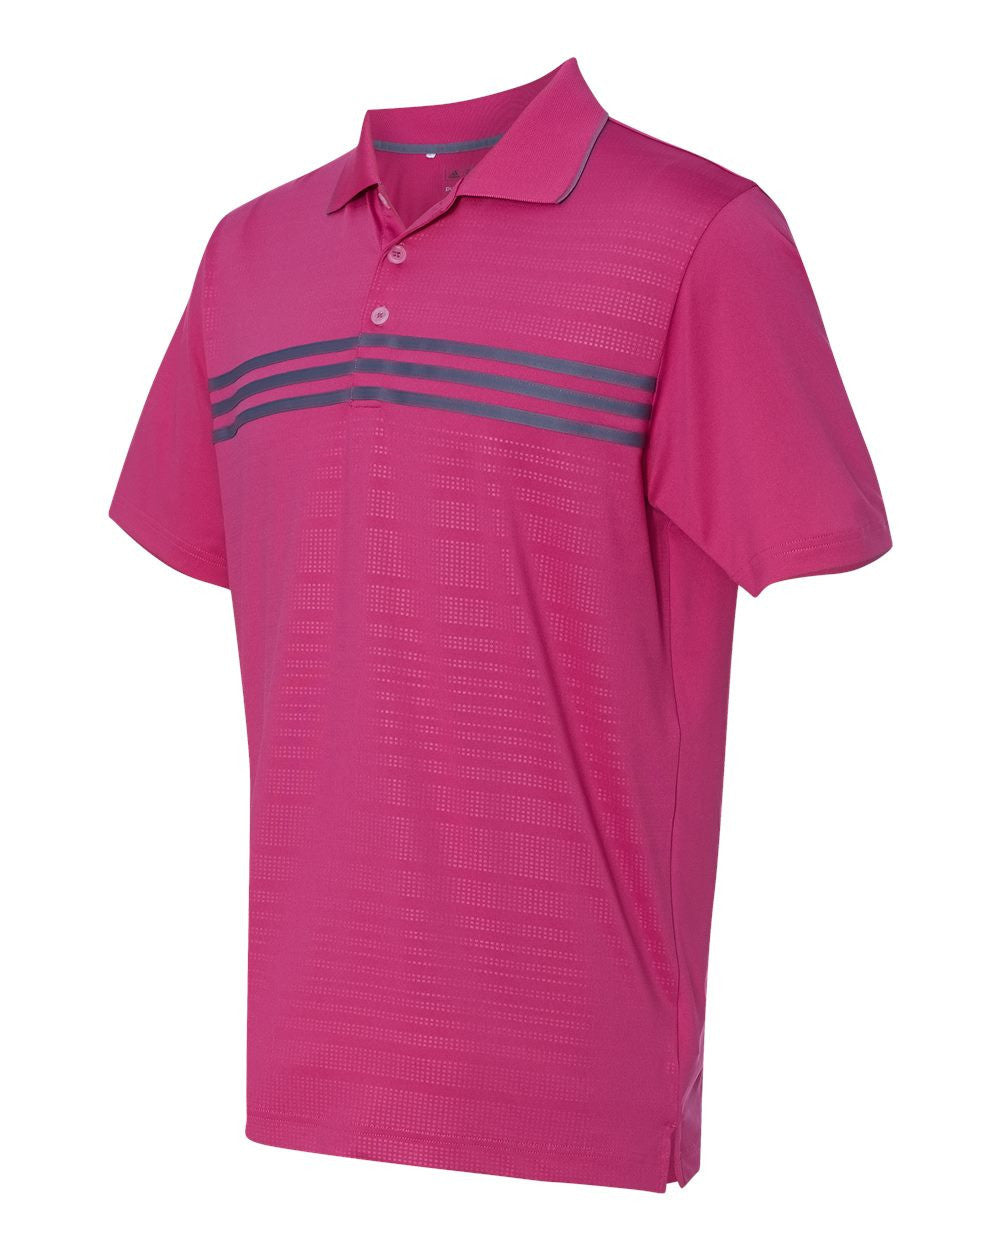 Golf Performance Chest Stripe Polos by Adidas - onestoppolos.com